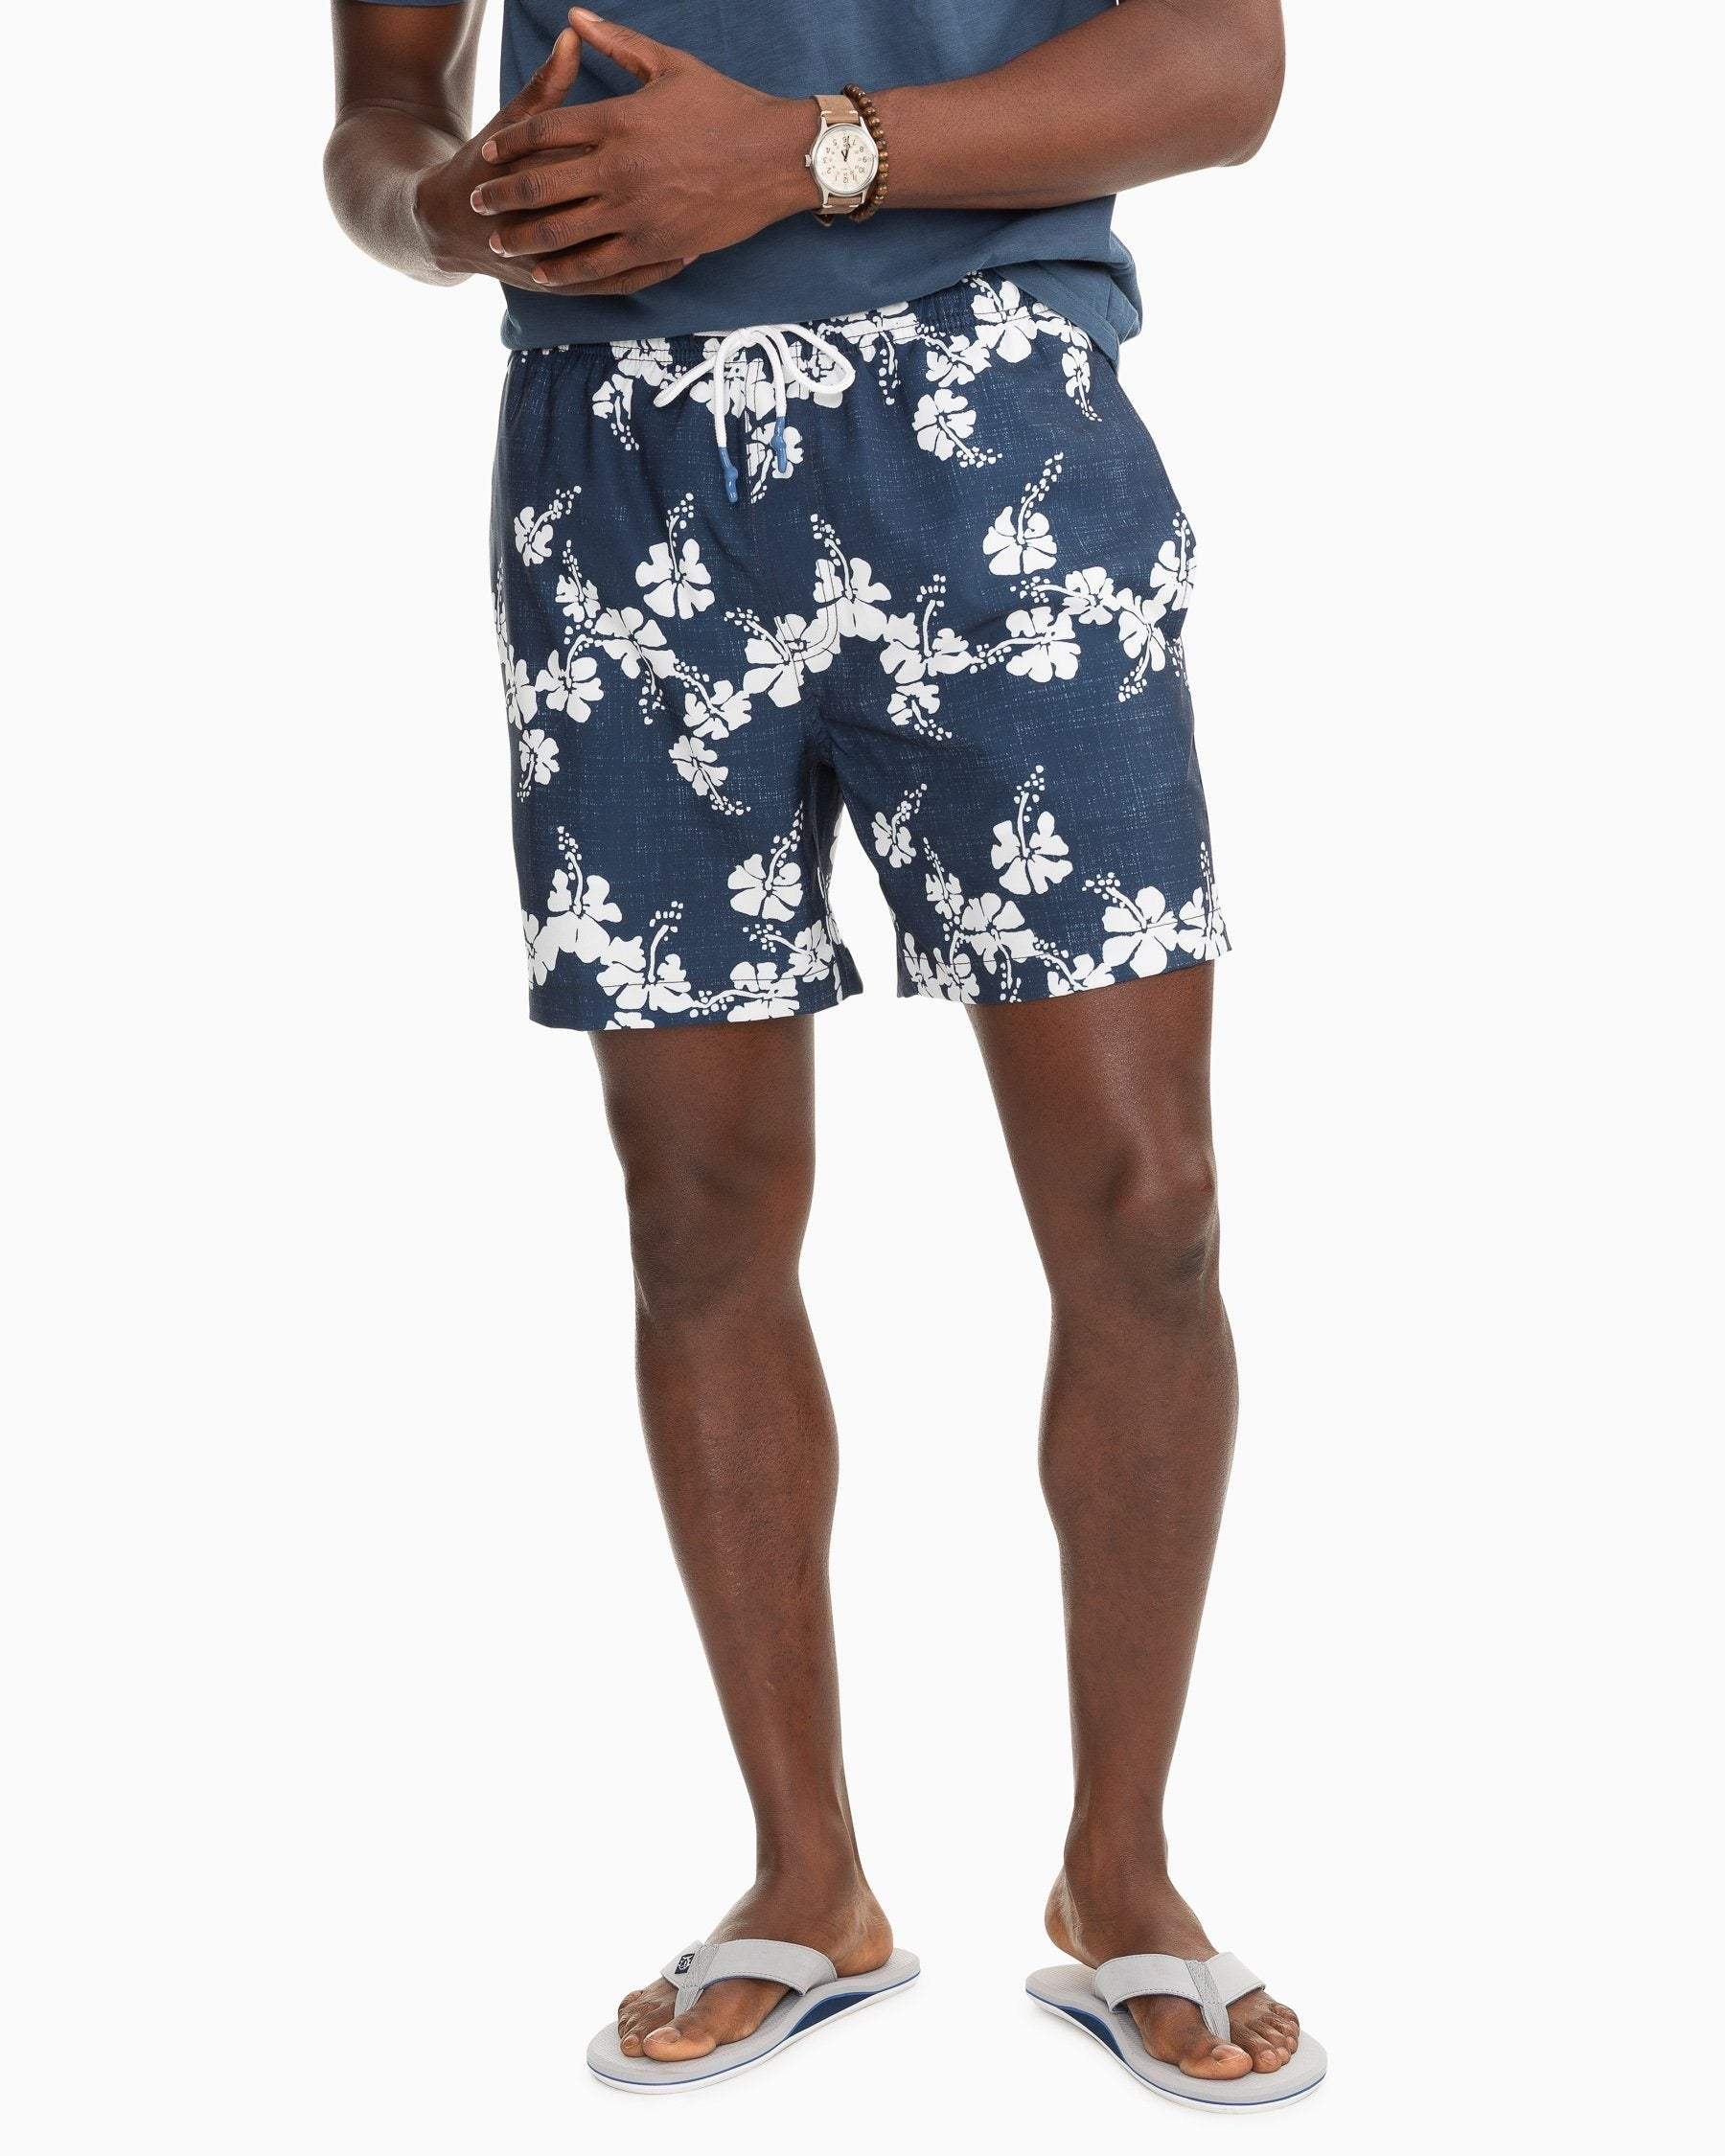 Blue White Hibiscus Flower Mens Beach Shorts Swimming Trunks Dry Fit Board Short with Mesh Lining